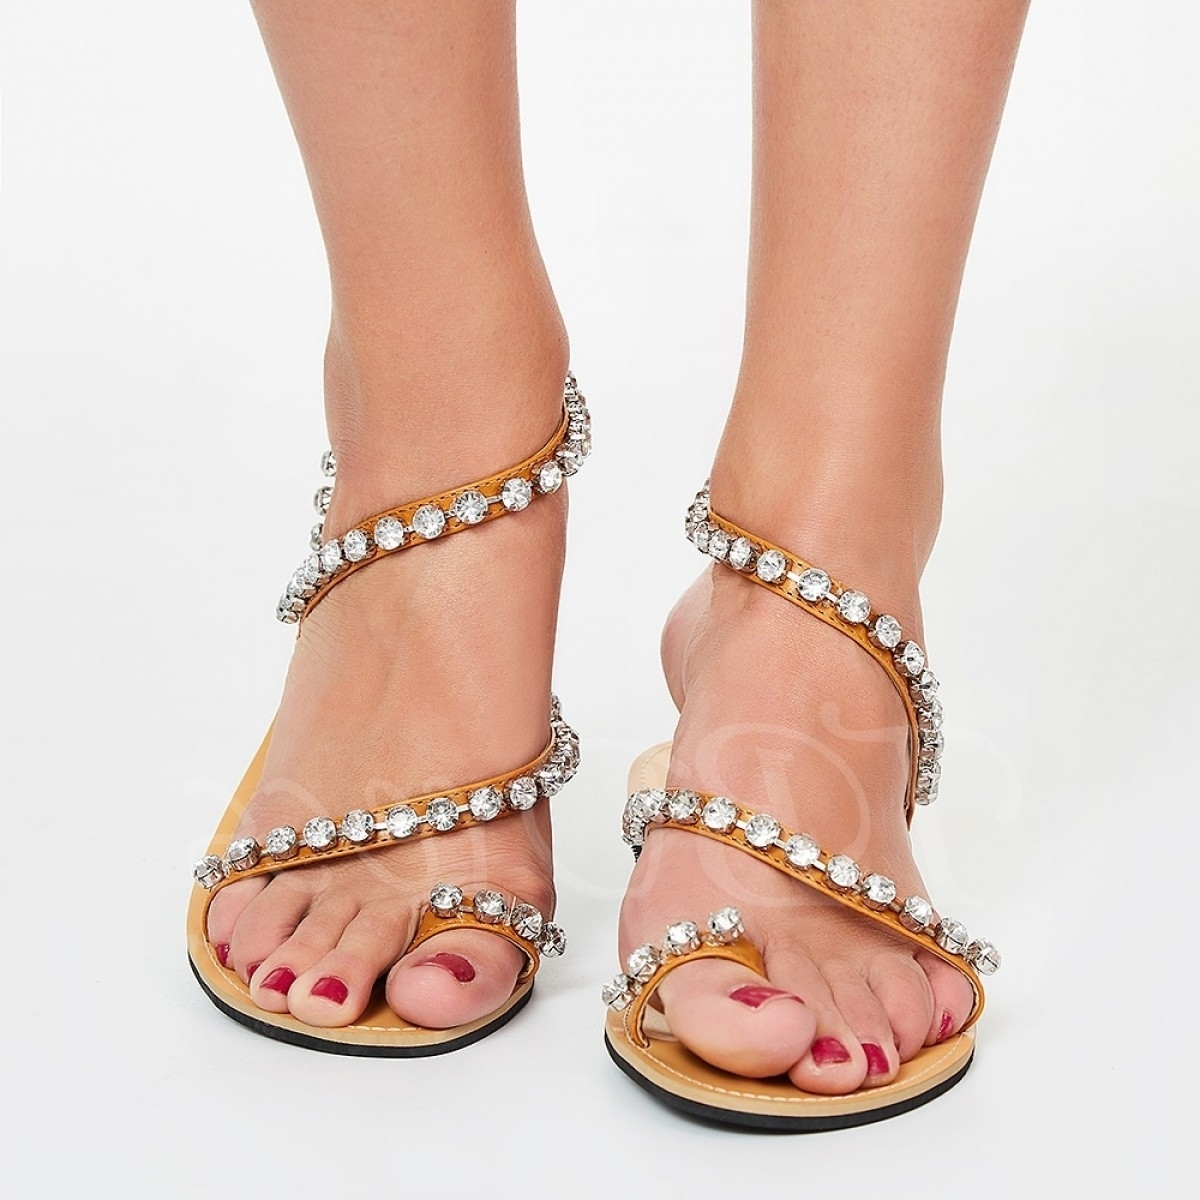 High Fancy Heels Anklet Toe Ring | Ksvhs Jewellery With Regard To Latest Sandals Rhinestone Toe Rings (Gallery 4 of 15)